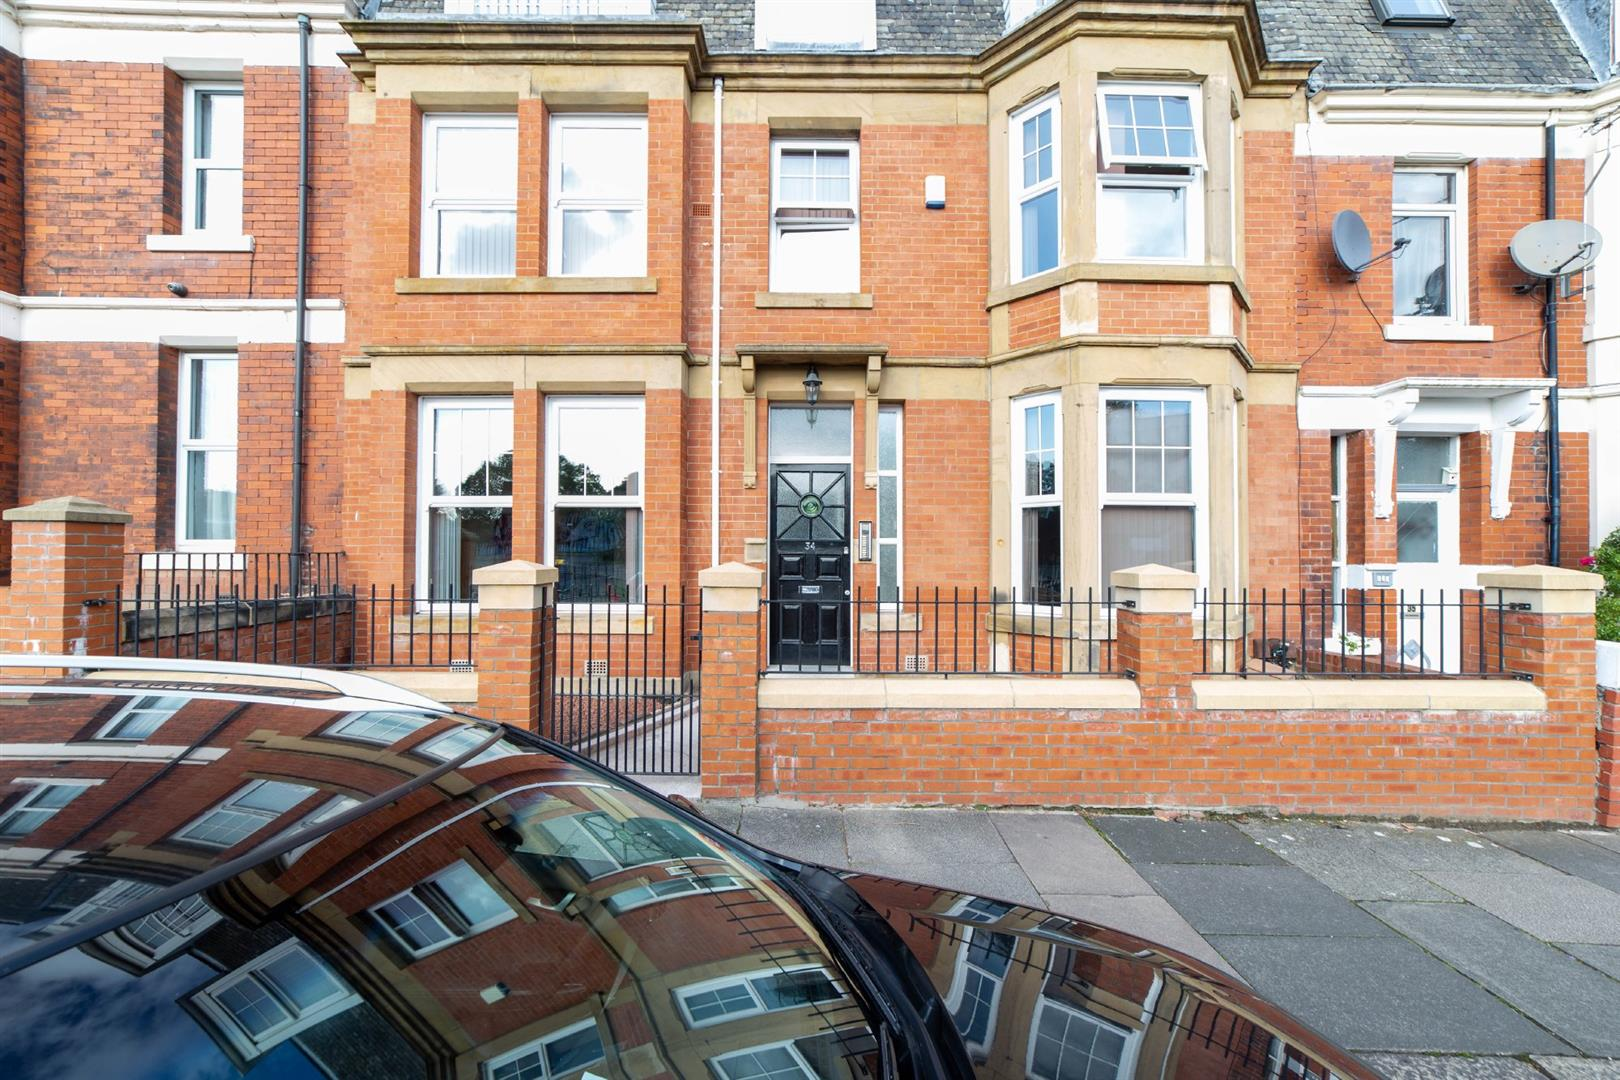 8 bed terraced house to rent in Newcastle Upon Tyne, NE2 1JS 22